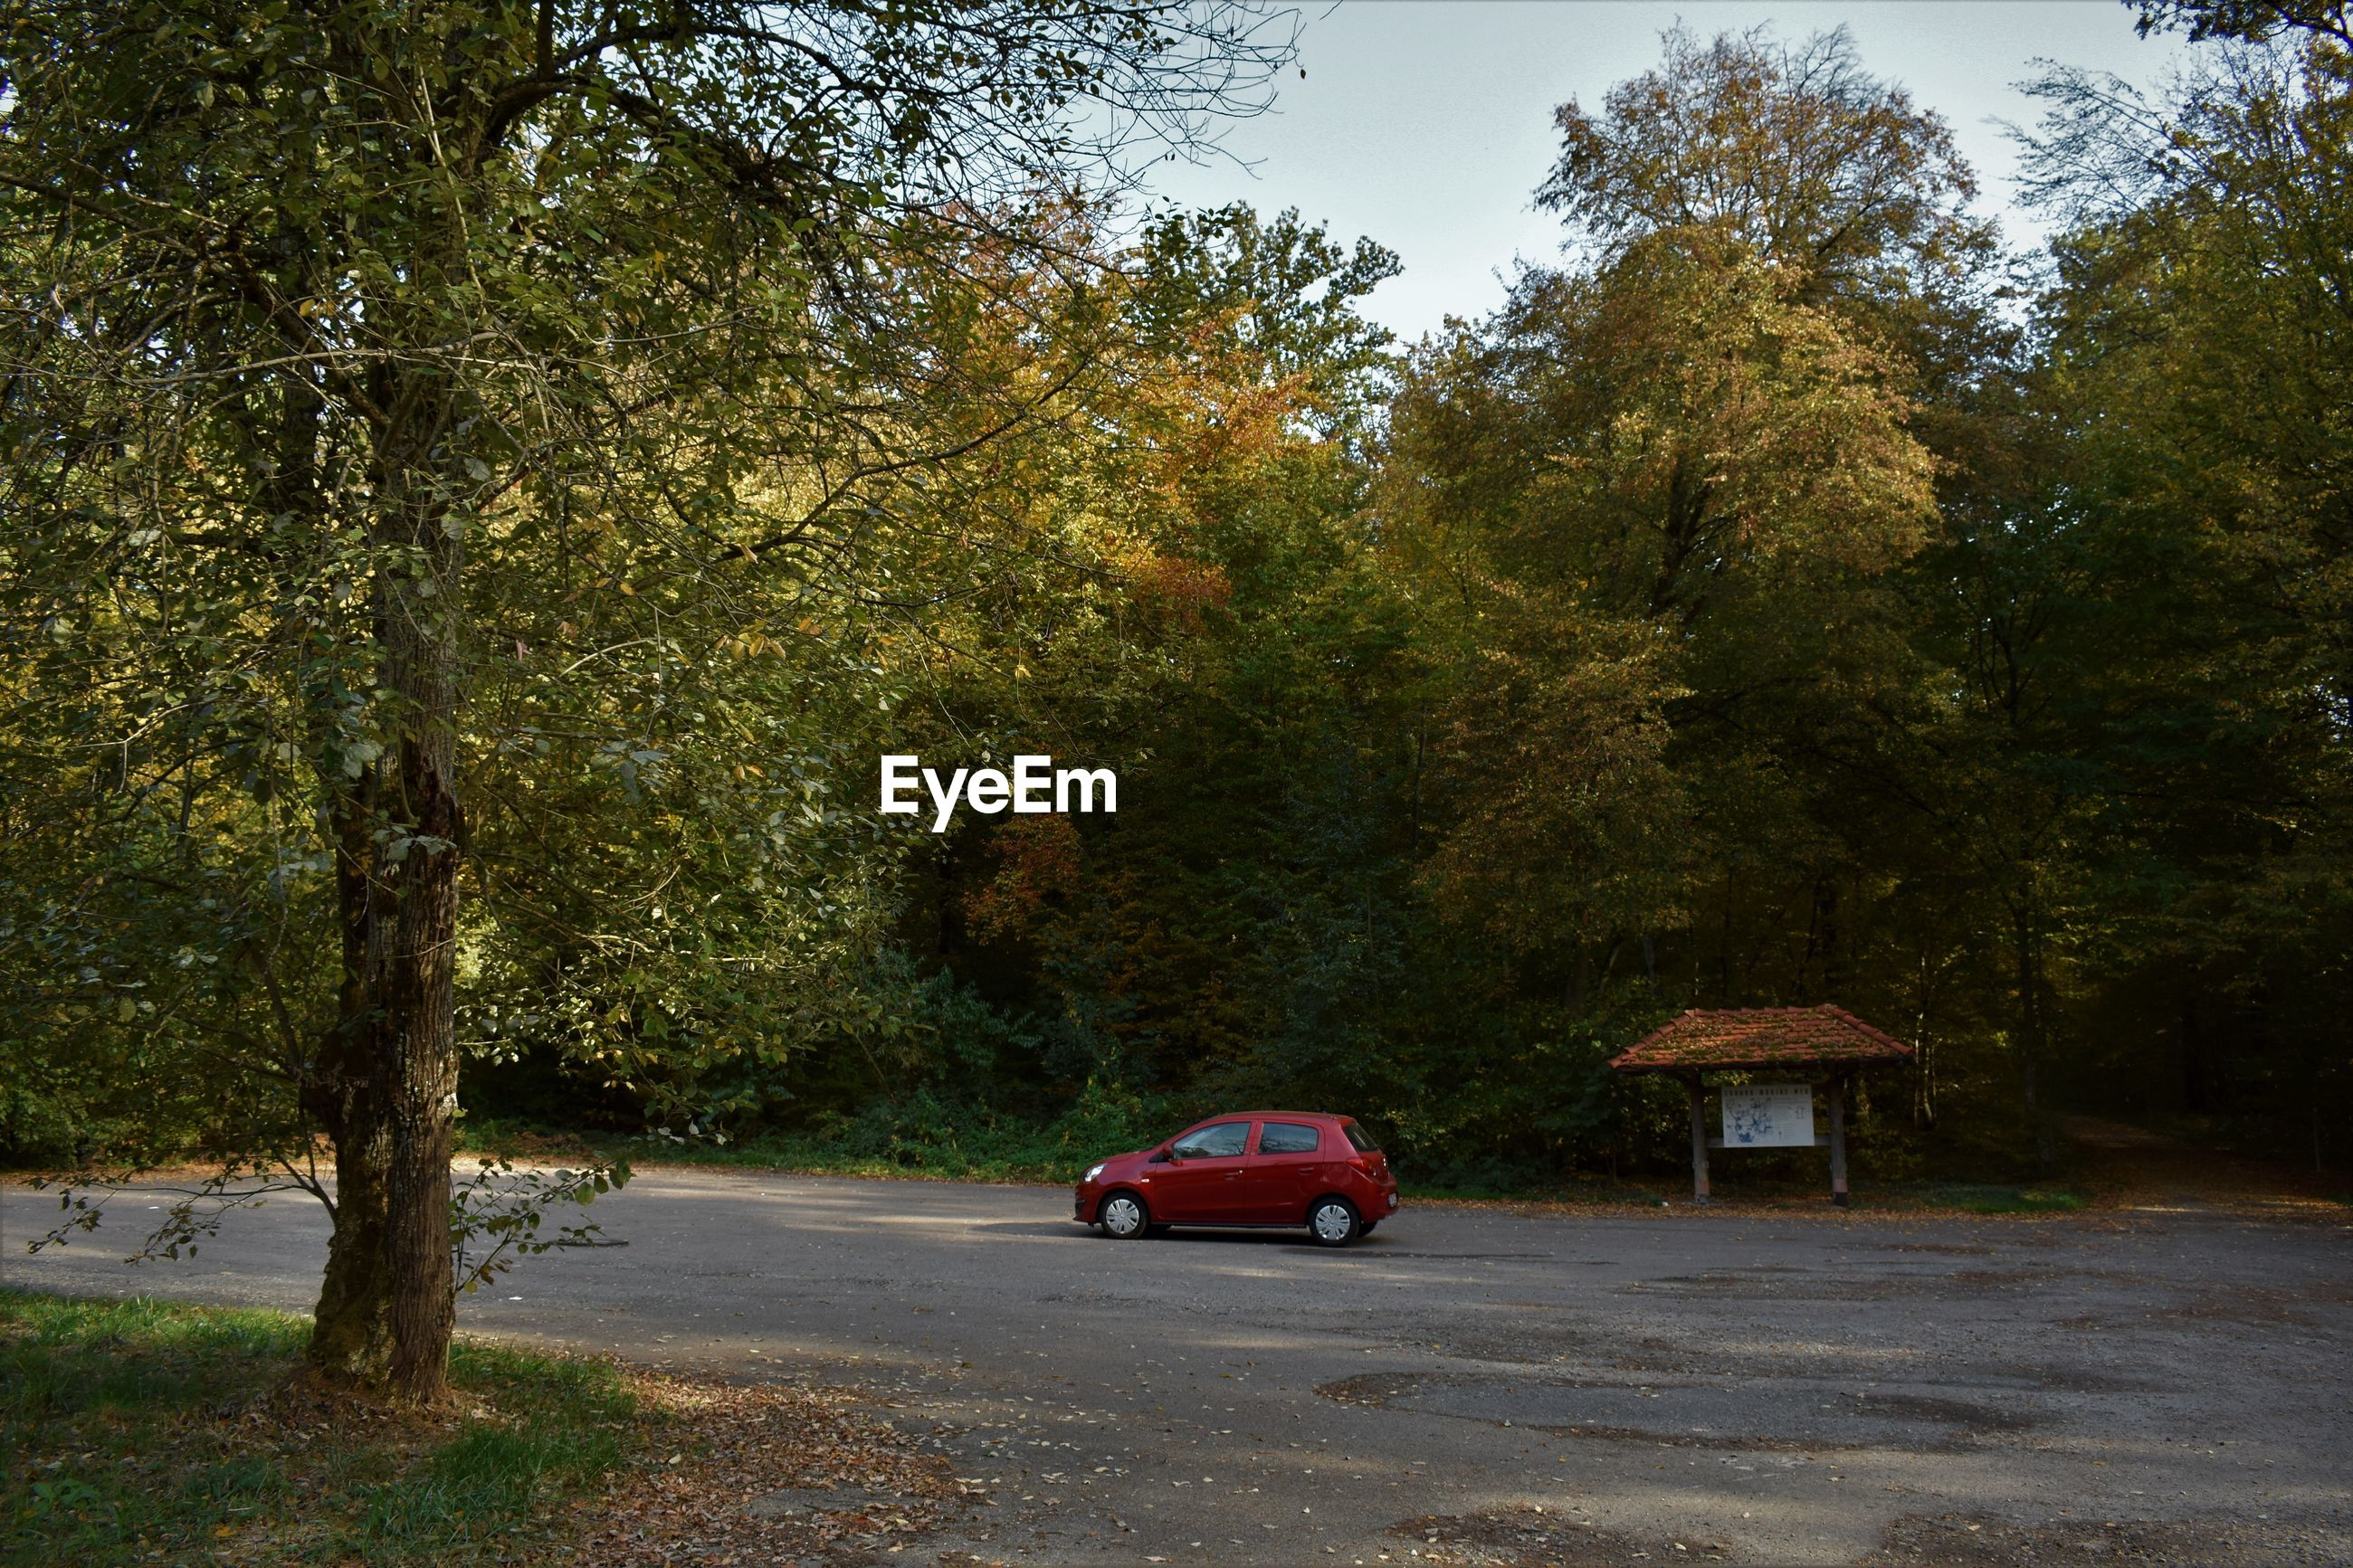 tree, plant, transportation, mode of transportation, car, motor vehicle, land vehicle, nature, road, growth, day, no people, green color, street, outdoors, city, land, the way forward, direction, autumn, change